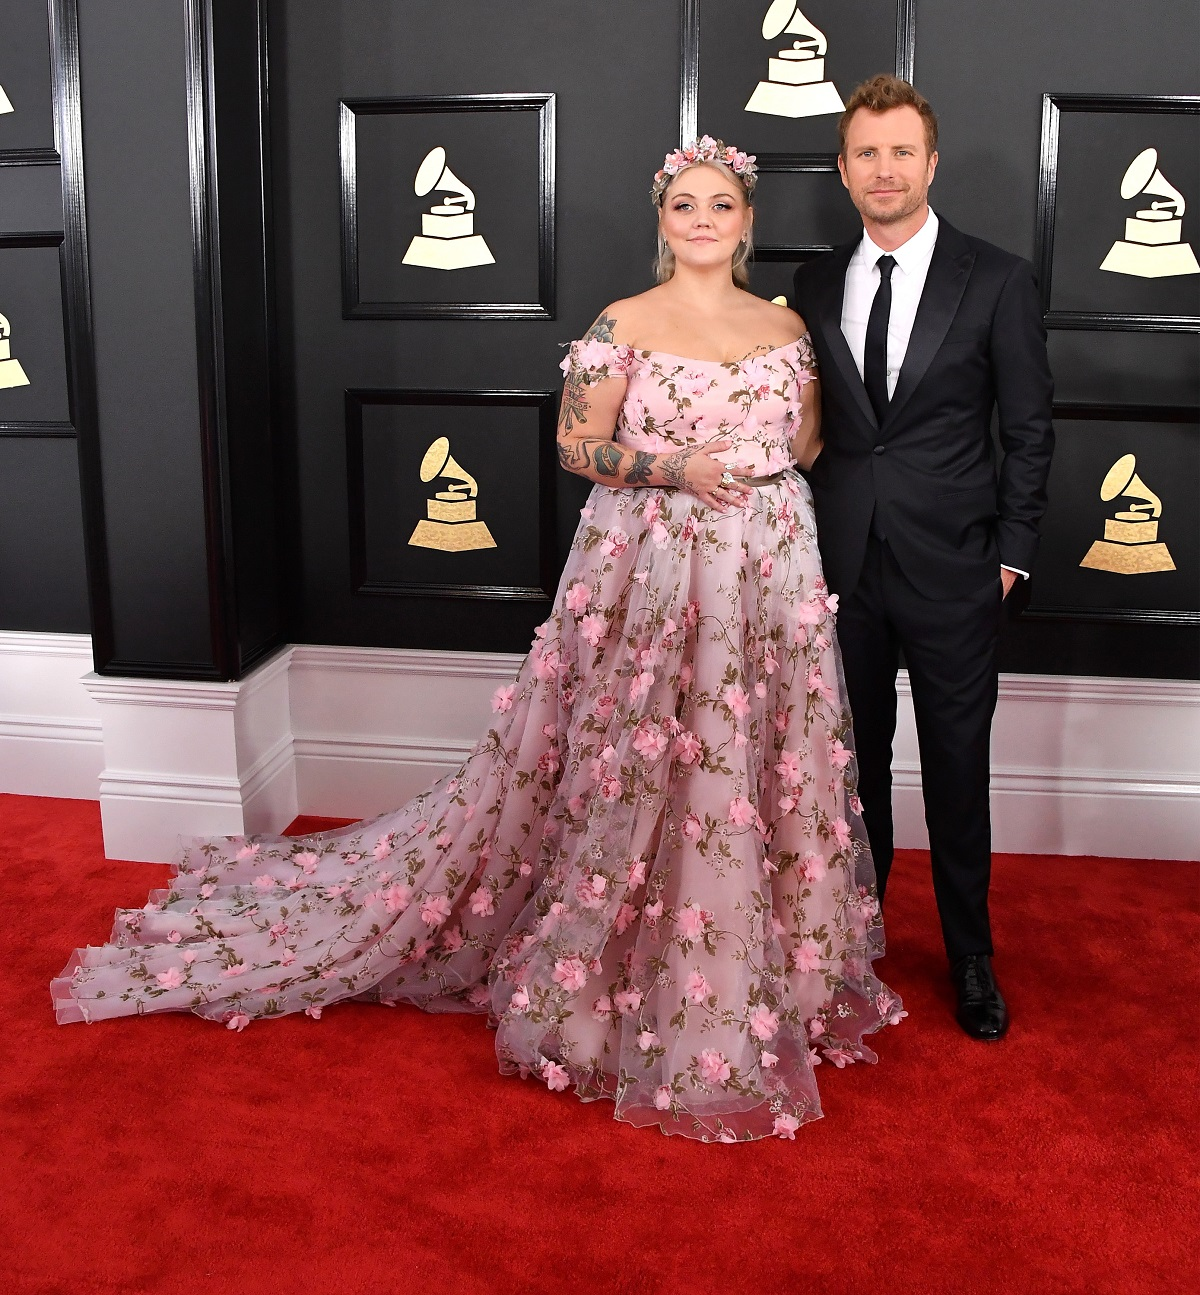 Elle King, in a Lirika Matoshi floral gown, and Dierks Bentley on the red carpet at the 2017 Grammys